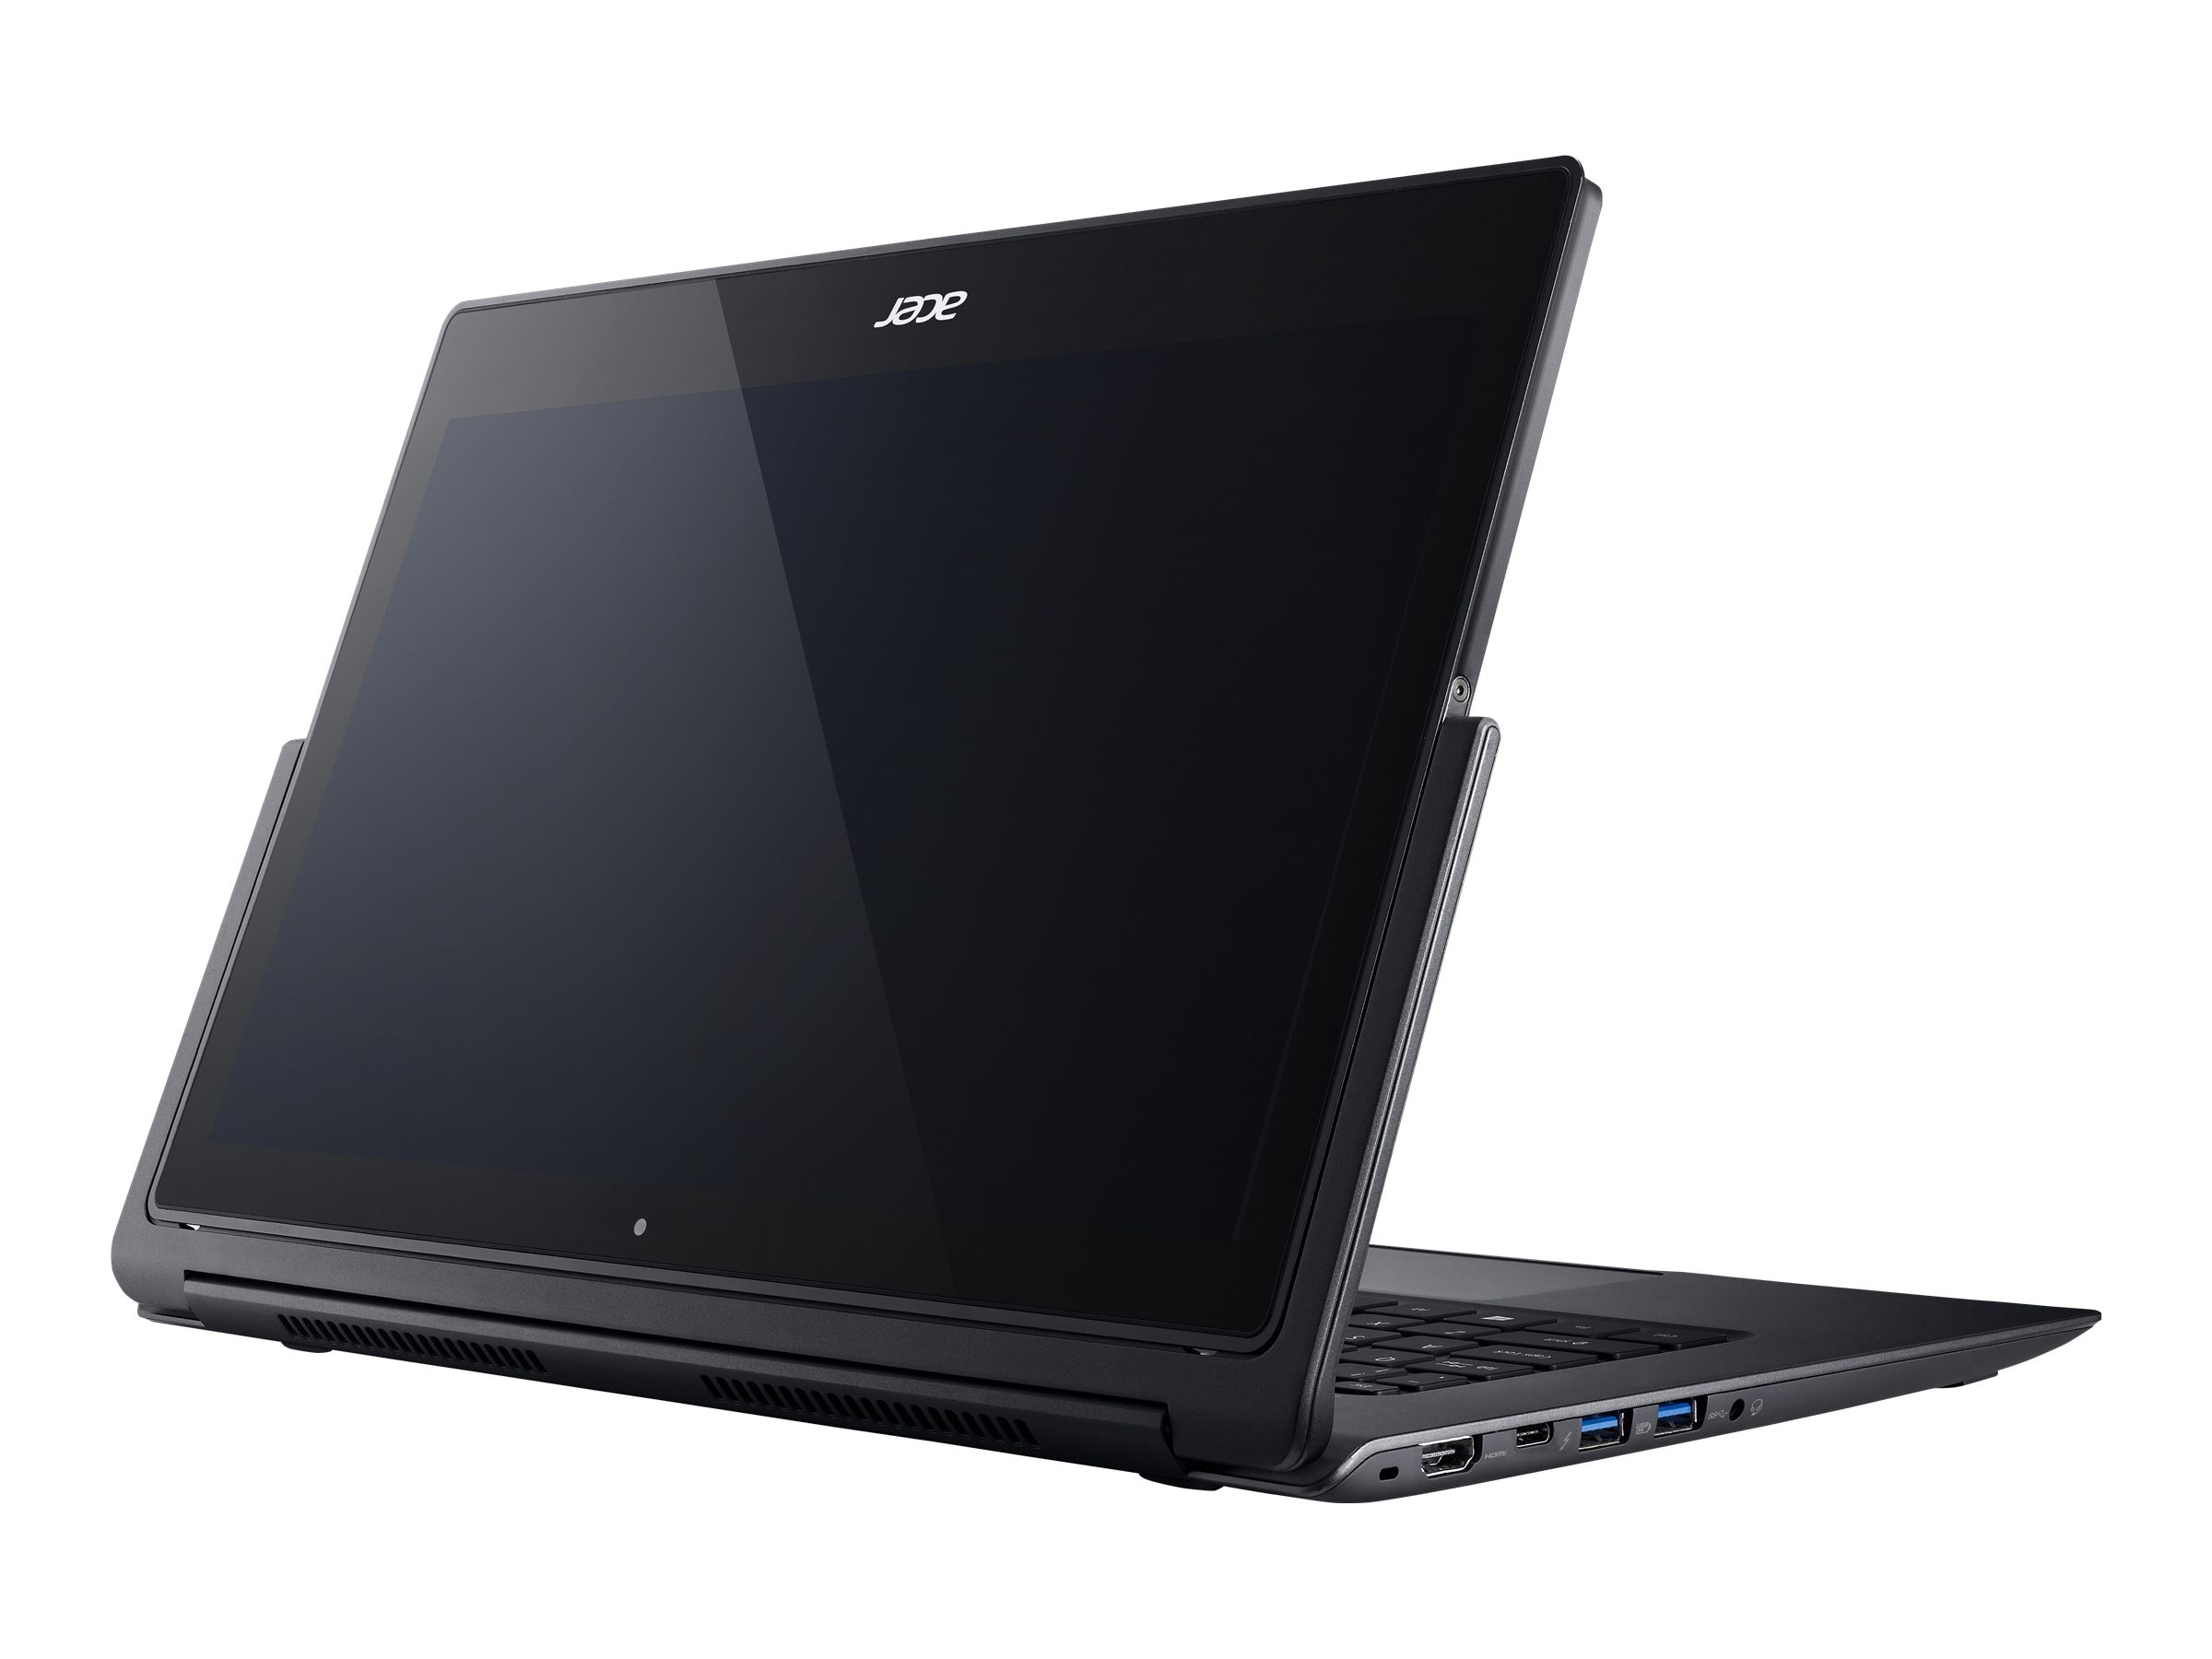 Acer Aspire R7-372T-50BG 2.3GHz processor Windows 10 Pro 64-bit Edition